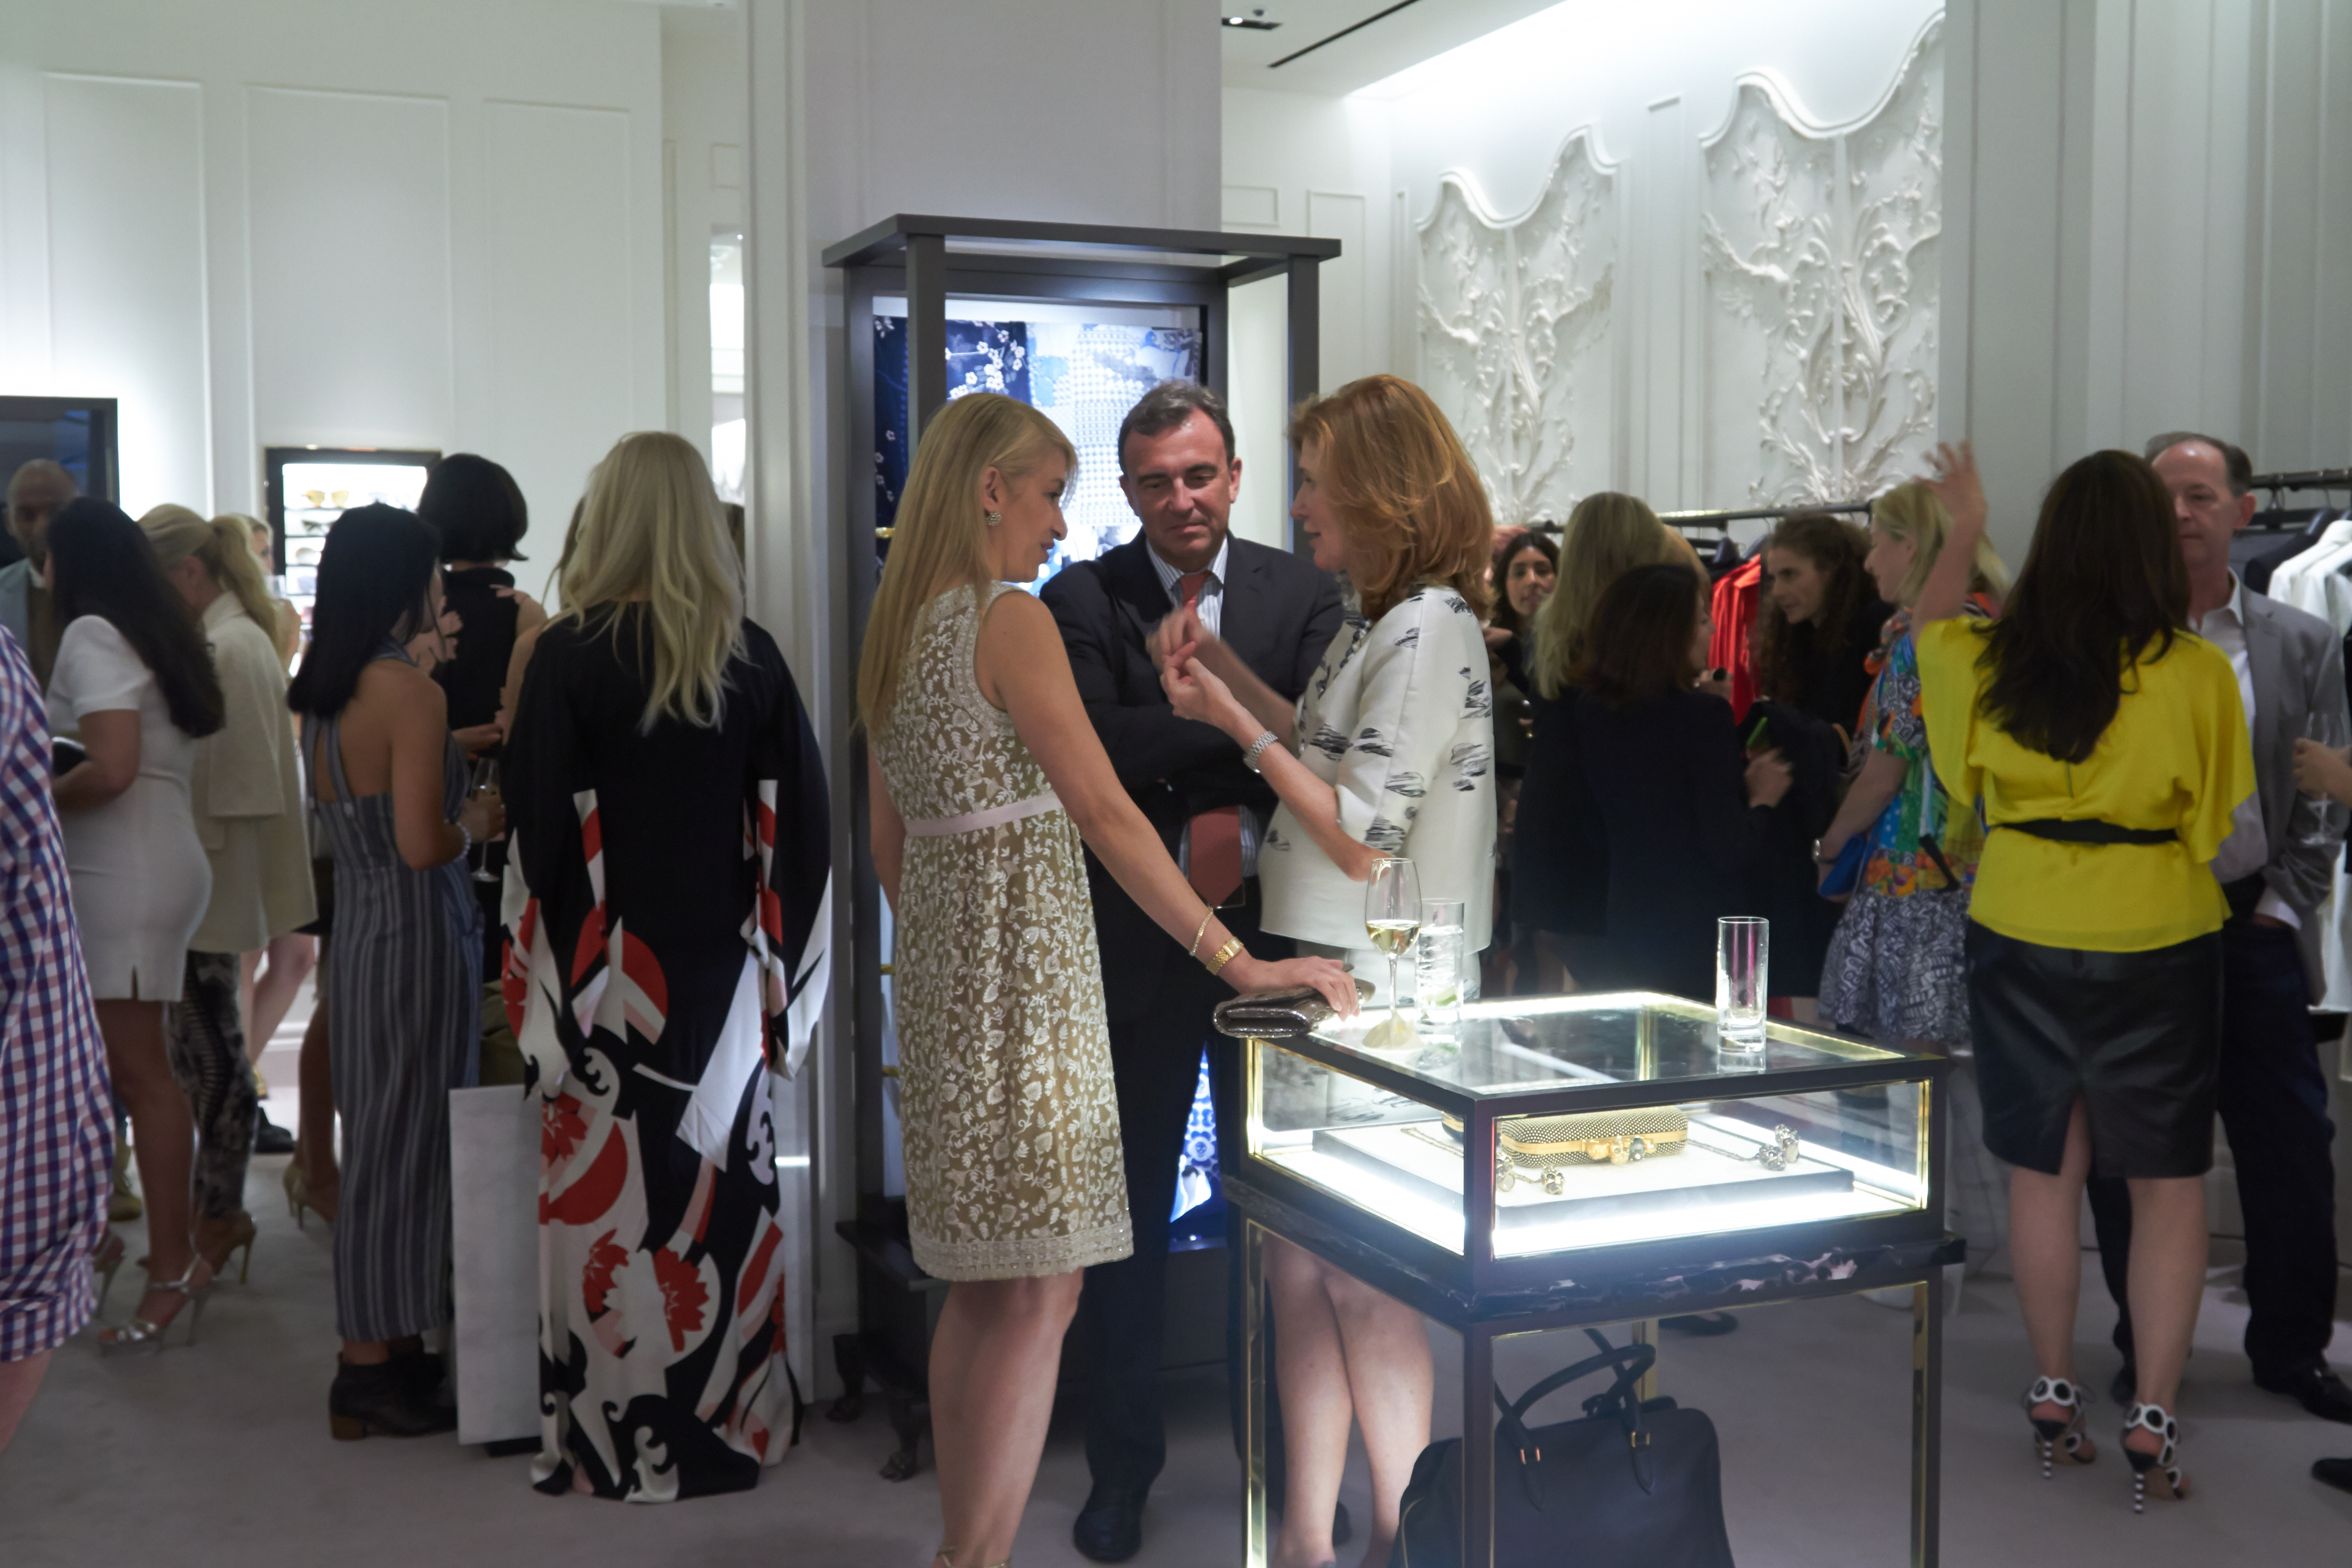 Guests chat and take in the stunning fashion on display during the reception.